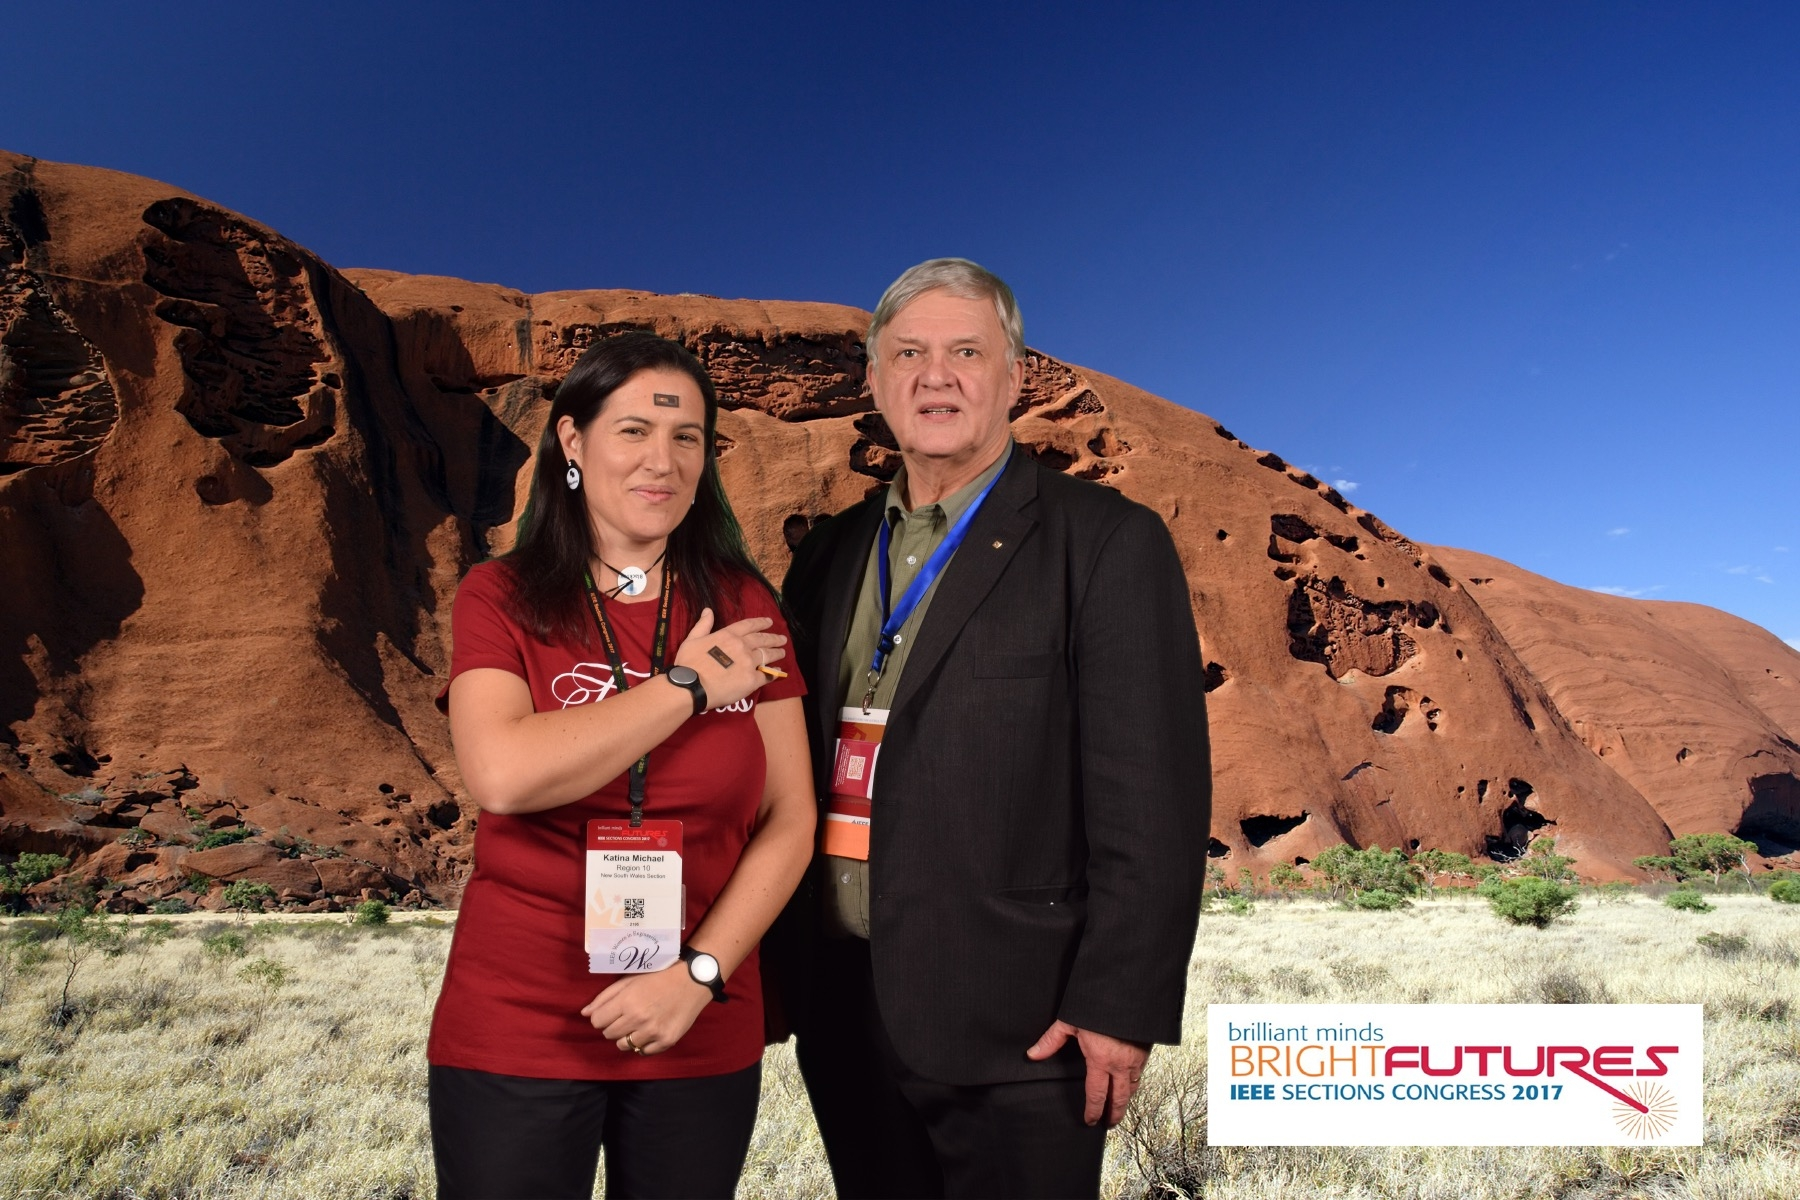 "Professor Katina Michael with 007 Stefan Mozer, Past President IEEE Consumer Electronics Society. Concern over the future of wearables and implantables. We chose a ""desert"" background at the photobooth, because if we continue on the current trajectory, the world will likely be barren, desolate and lifeless. Ironic that I was asked to speak on the ""pros and cons of implantables"" and the byline for this year's Sections Congress was ""brilliant minds 